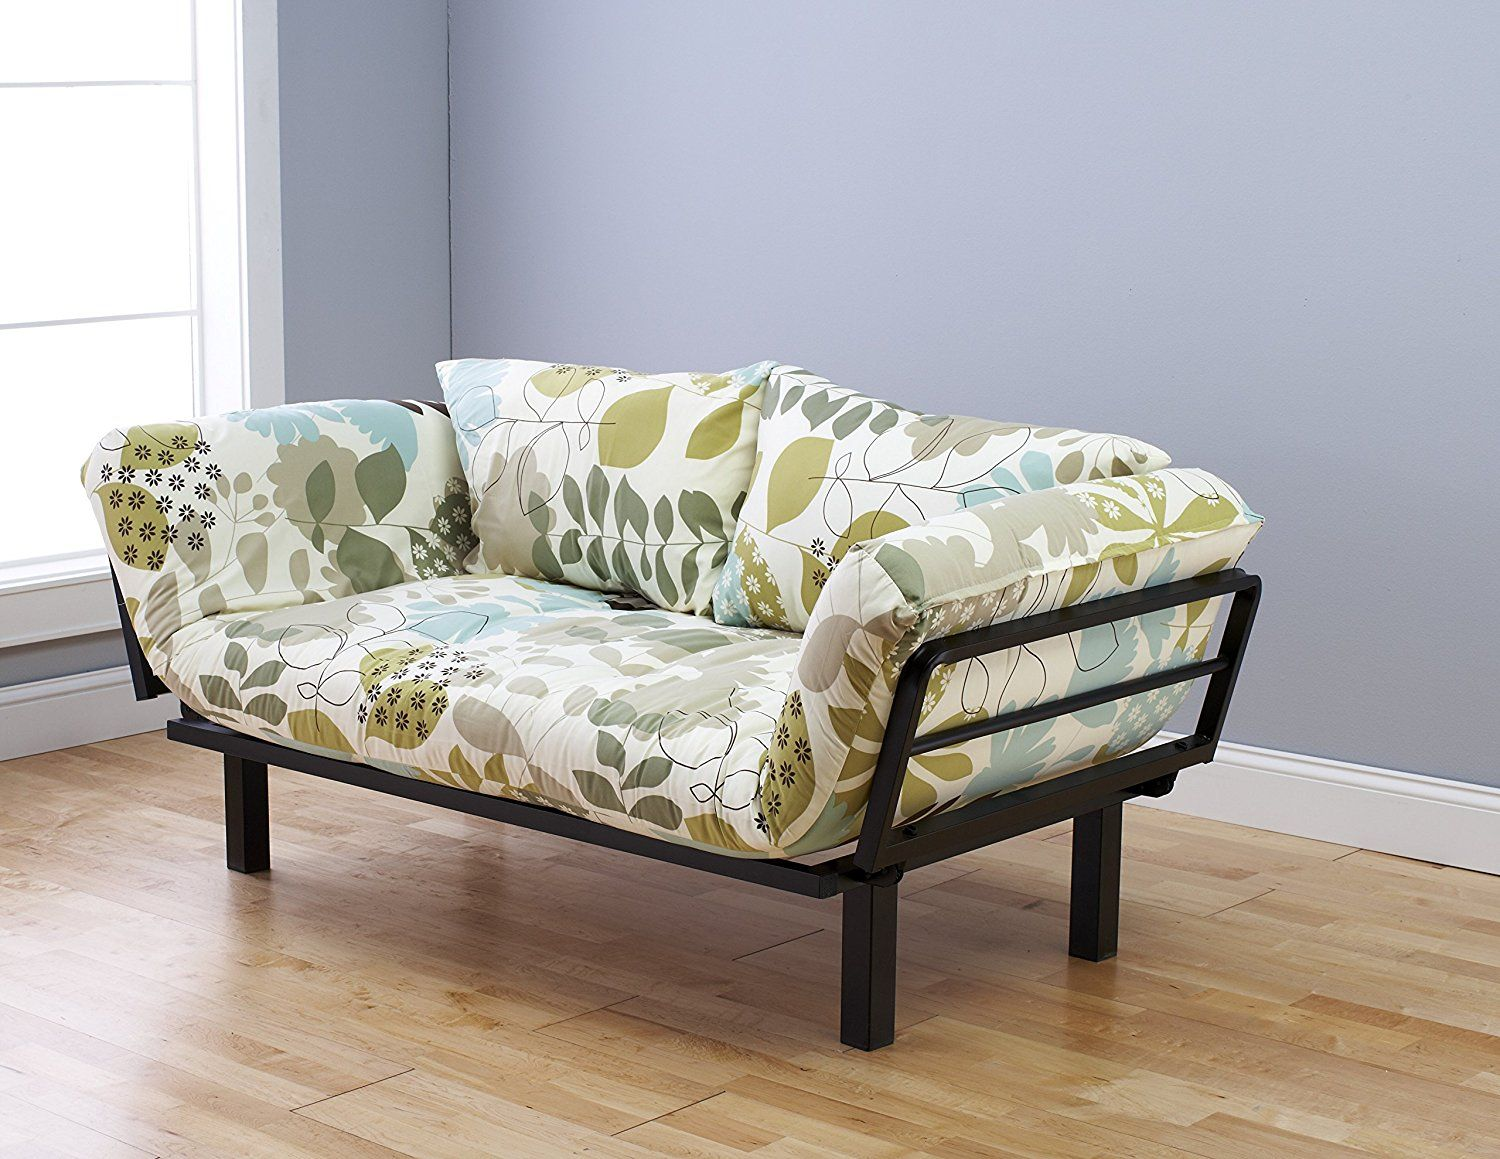 bedroom futon sofa couch and daybed or twin bed siz with futon